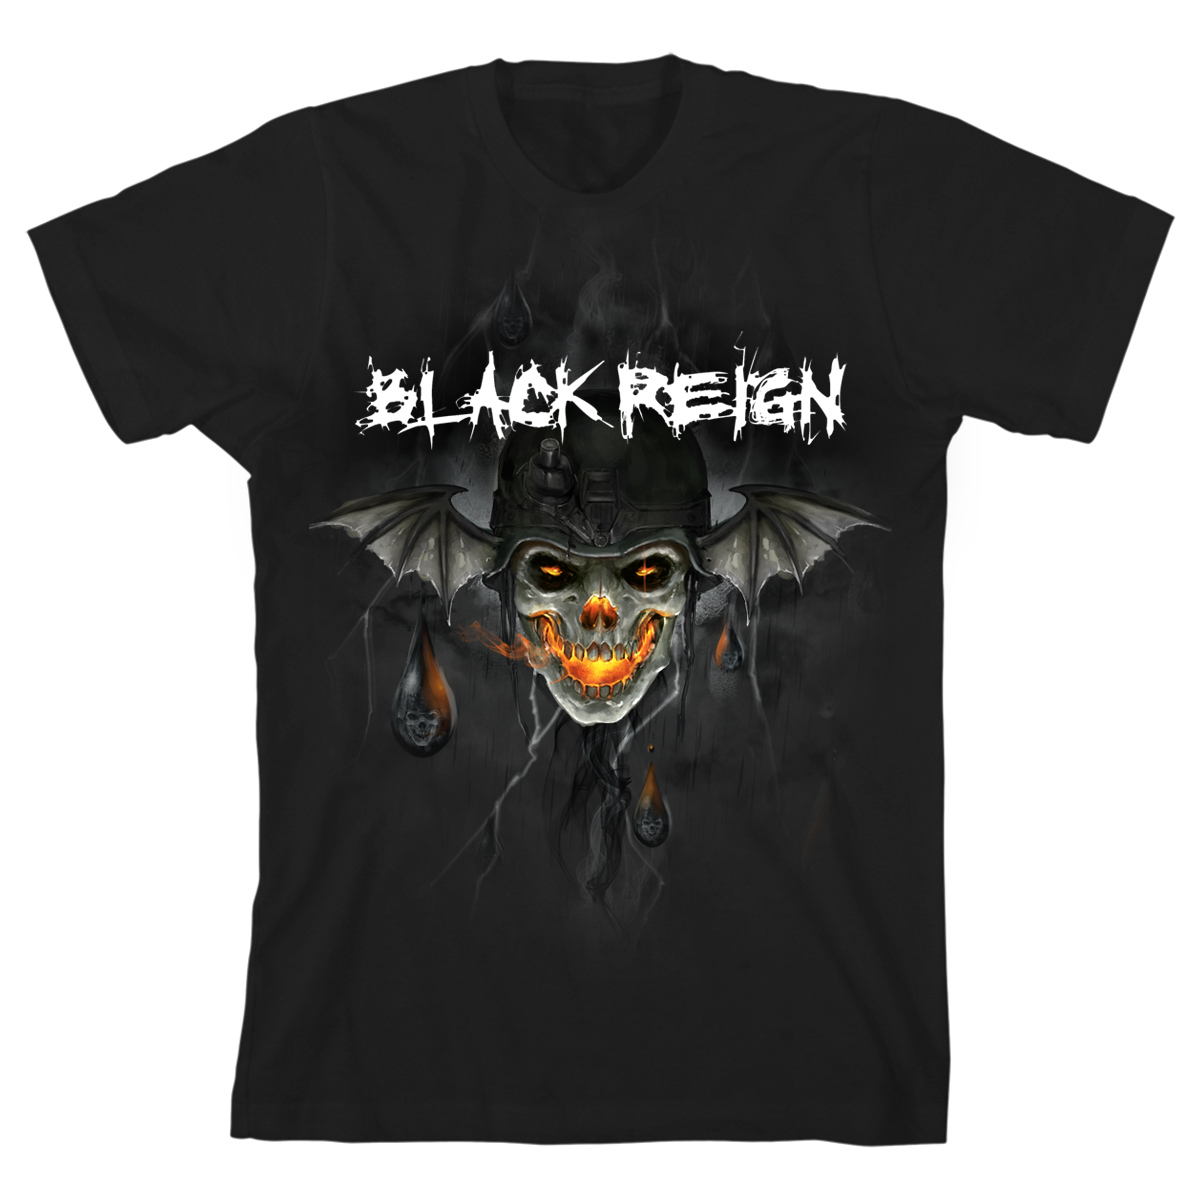 Black Reign T-Shirt Bundle with Digital Download